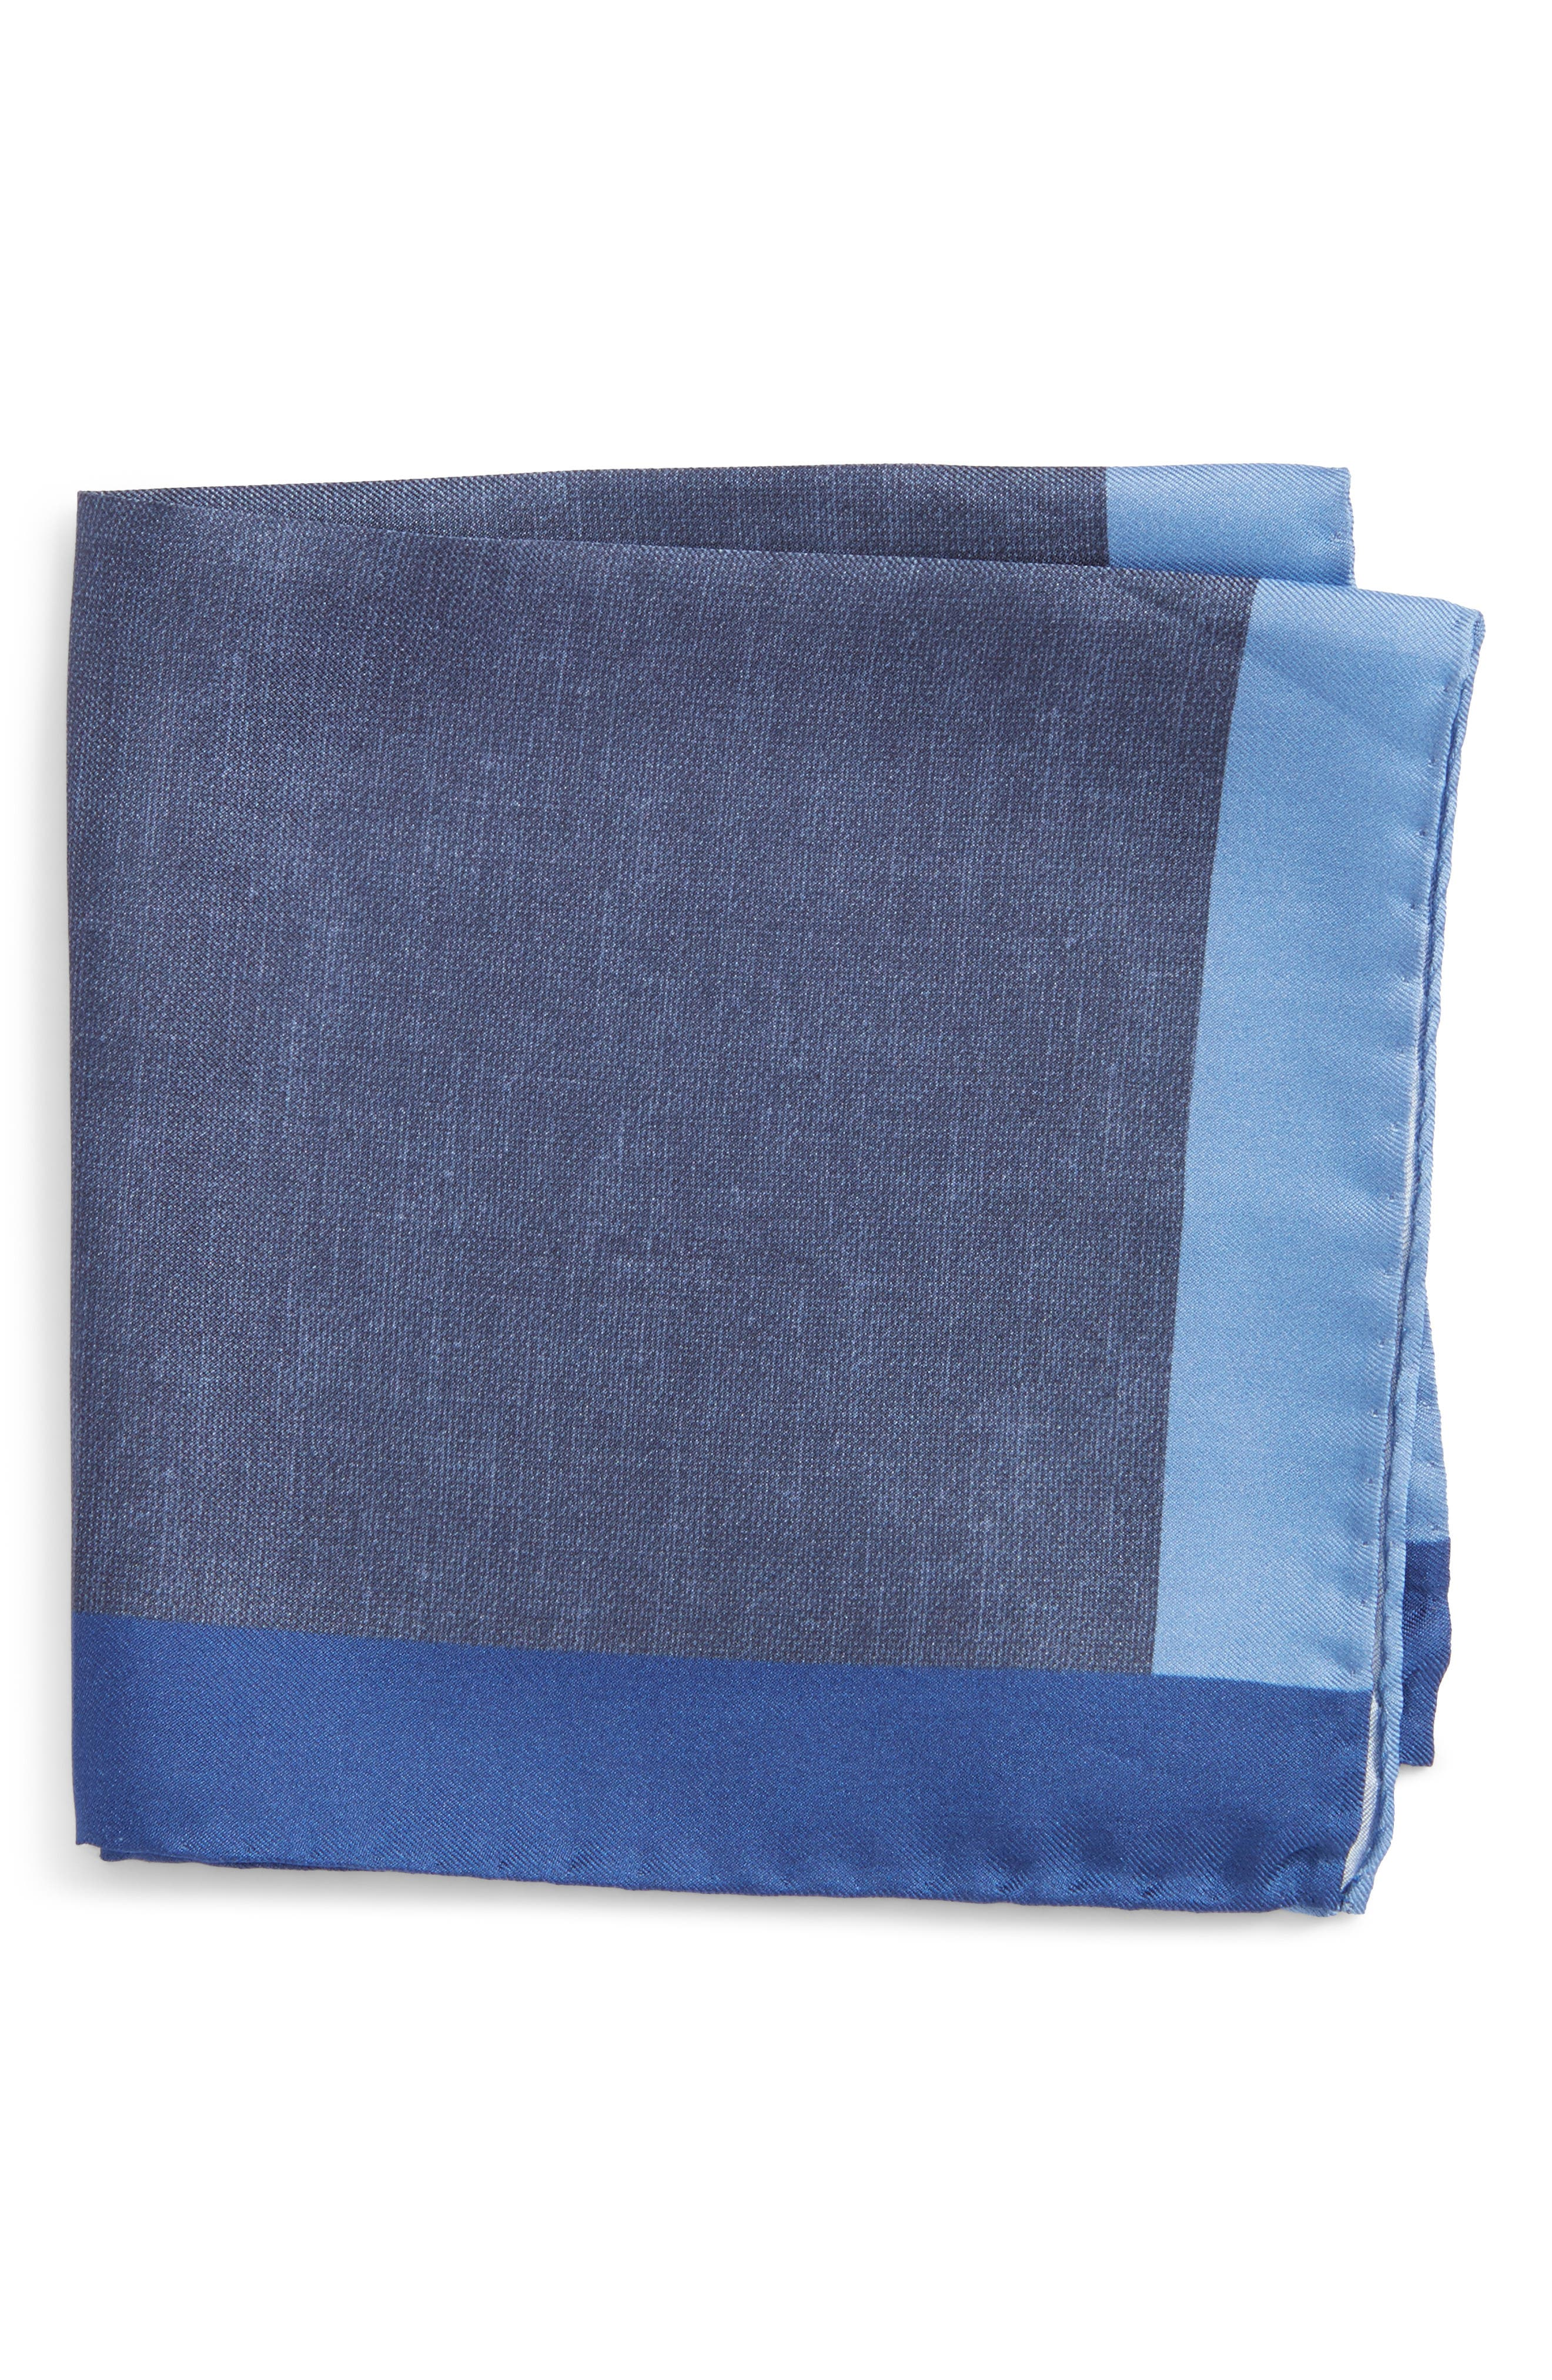 Nordstrom x BOSS Exclusive Silk Pocket Square,                             Main thumbnail 1, color,                             Blue